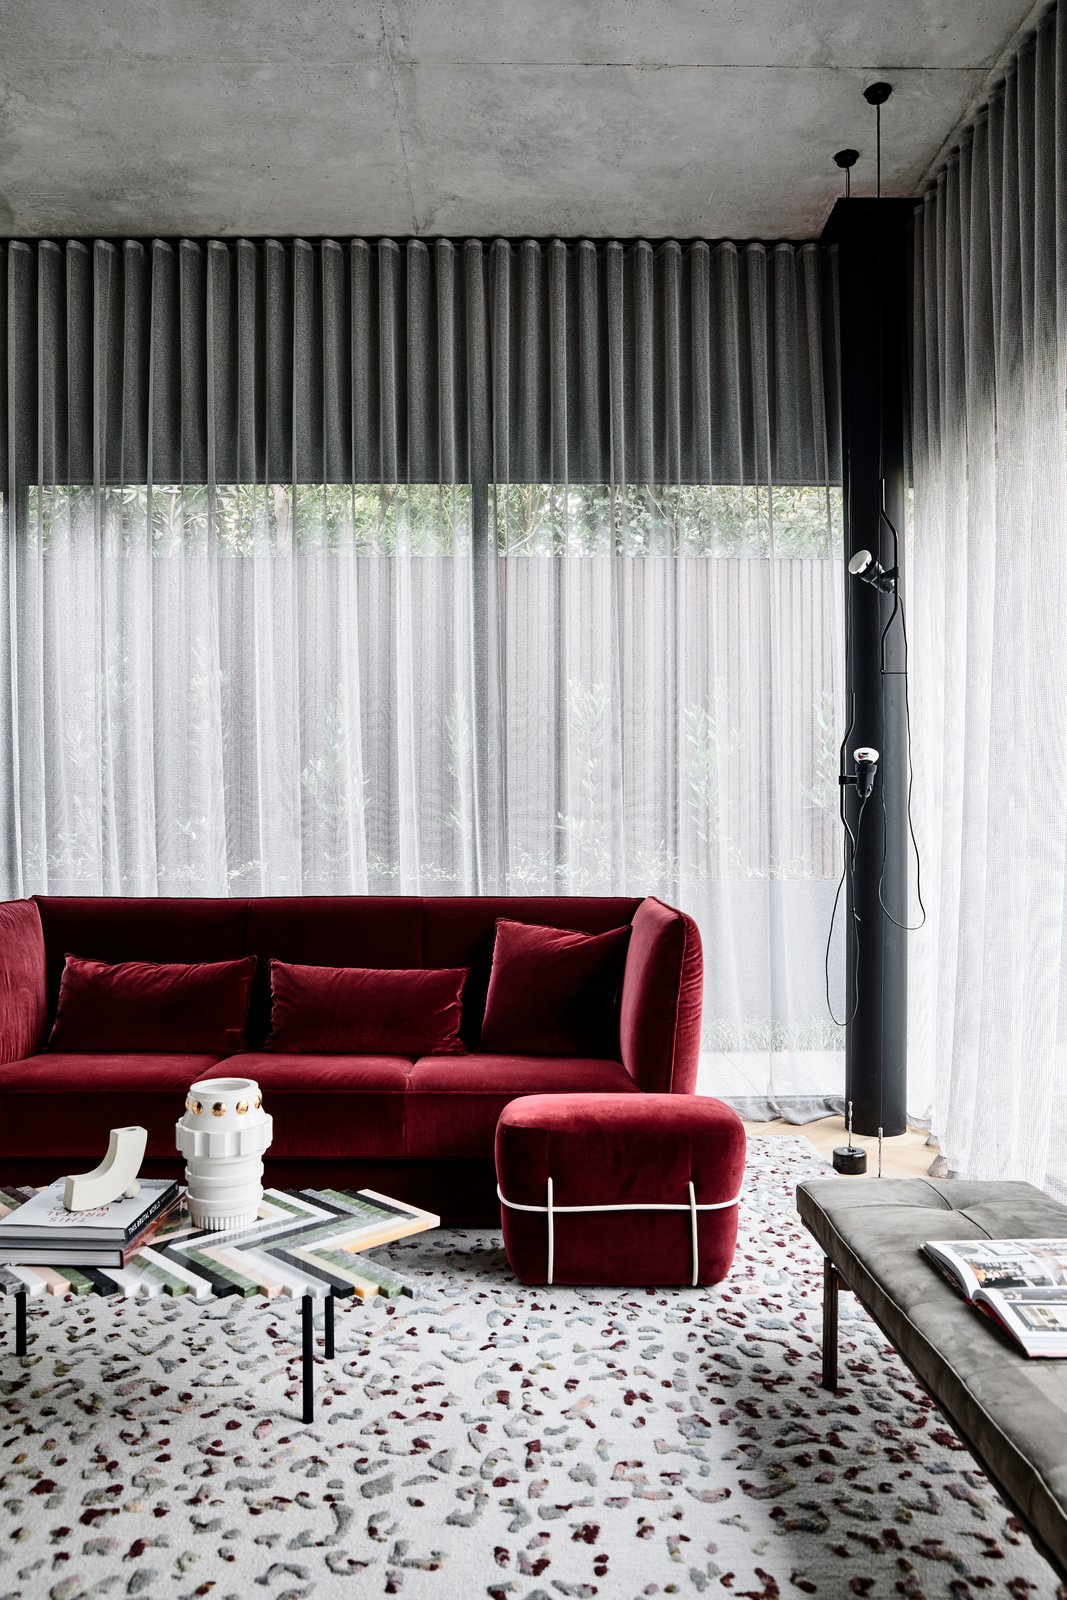 Living Room, Ottomans, Coffee Tables, Bench, Sofa, Ceiling Lighting, Floor Lighting, and Carpet Floor A lavish, velvet-upholstered red sofa in the living room.  Photo 12 of 20 in A Strong Builder Bond Results in a Sophisticated Australian Home